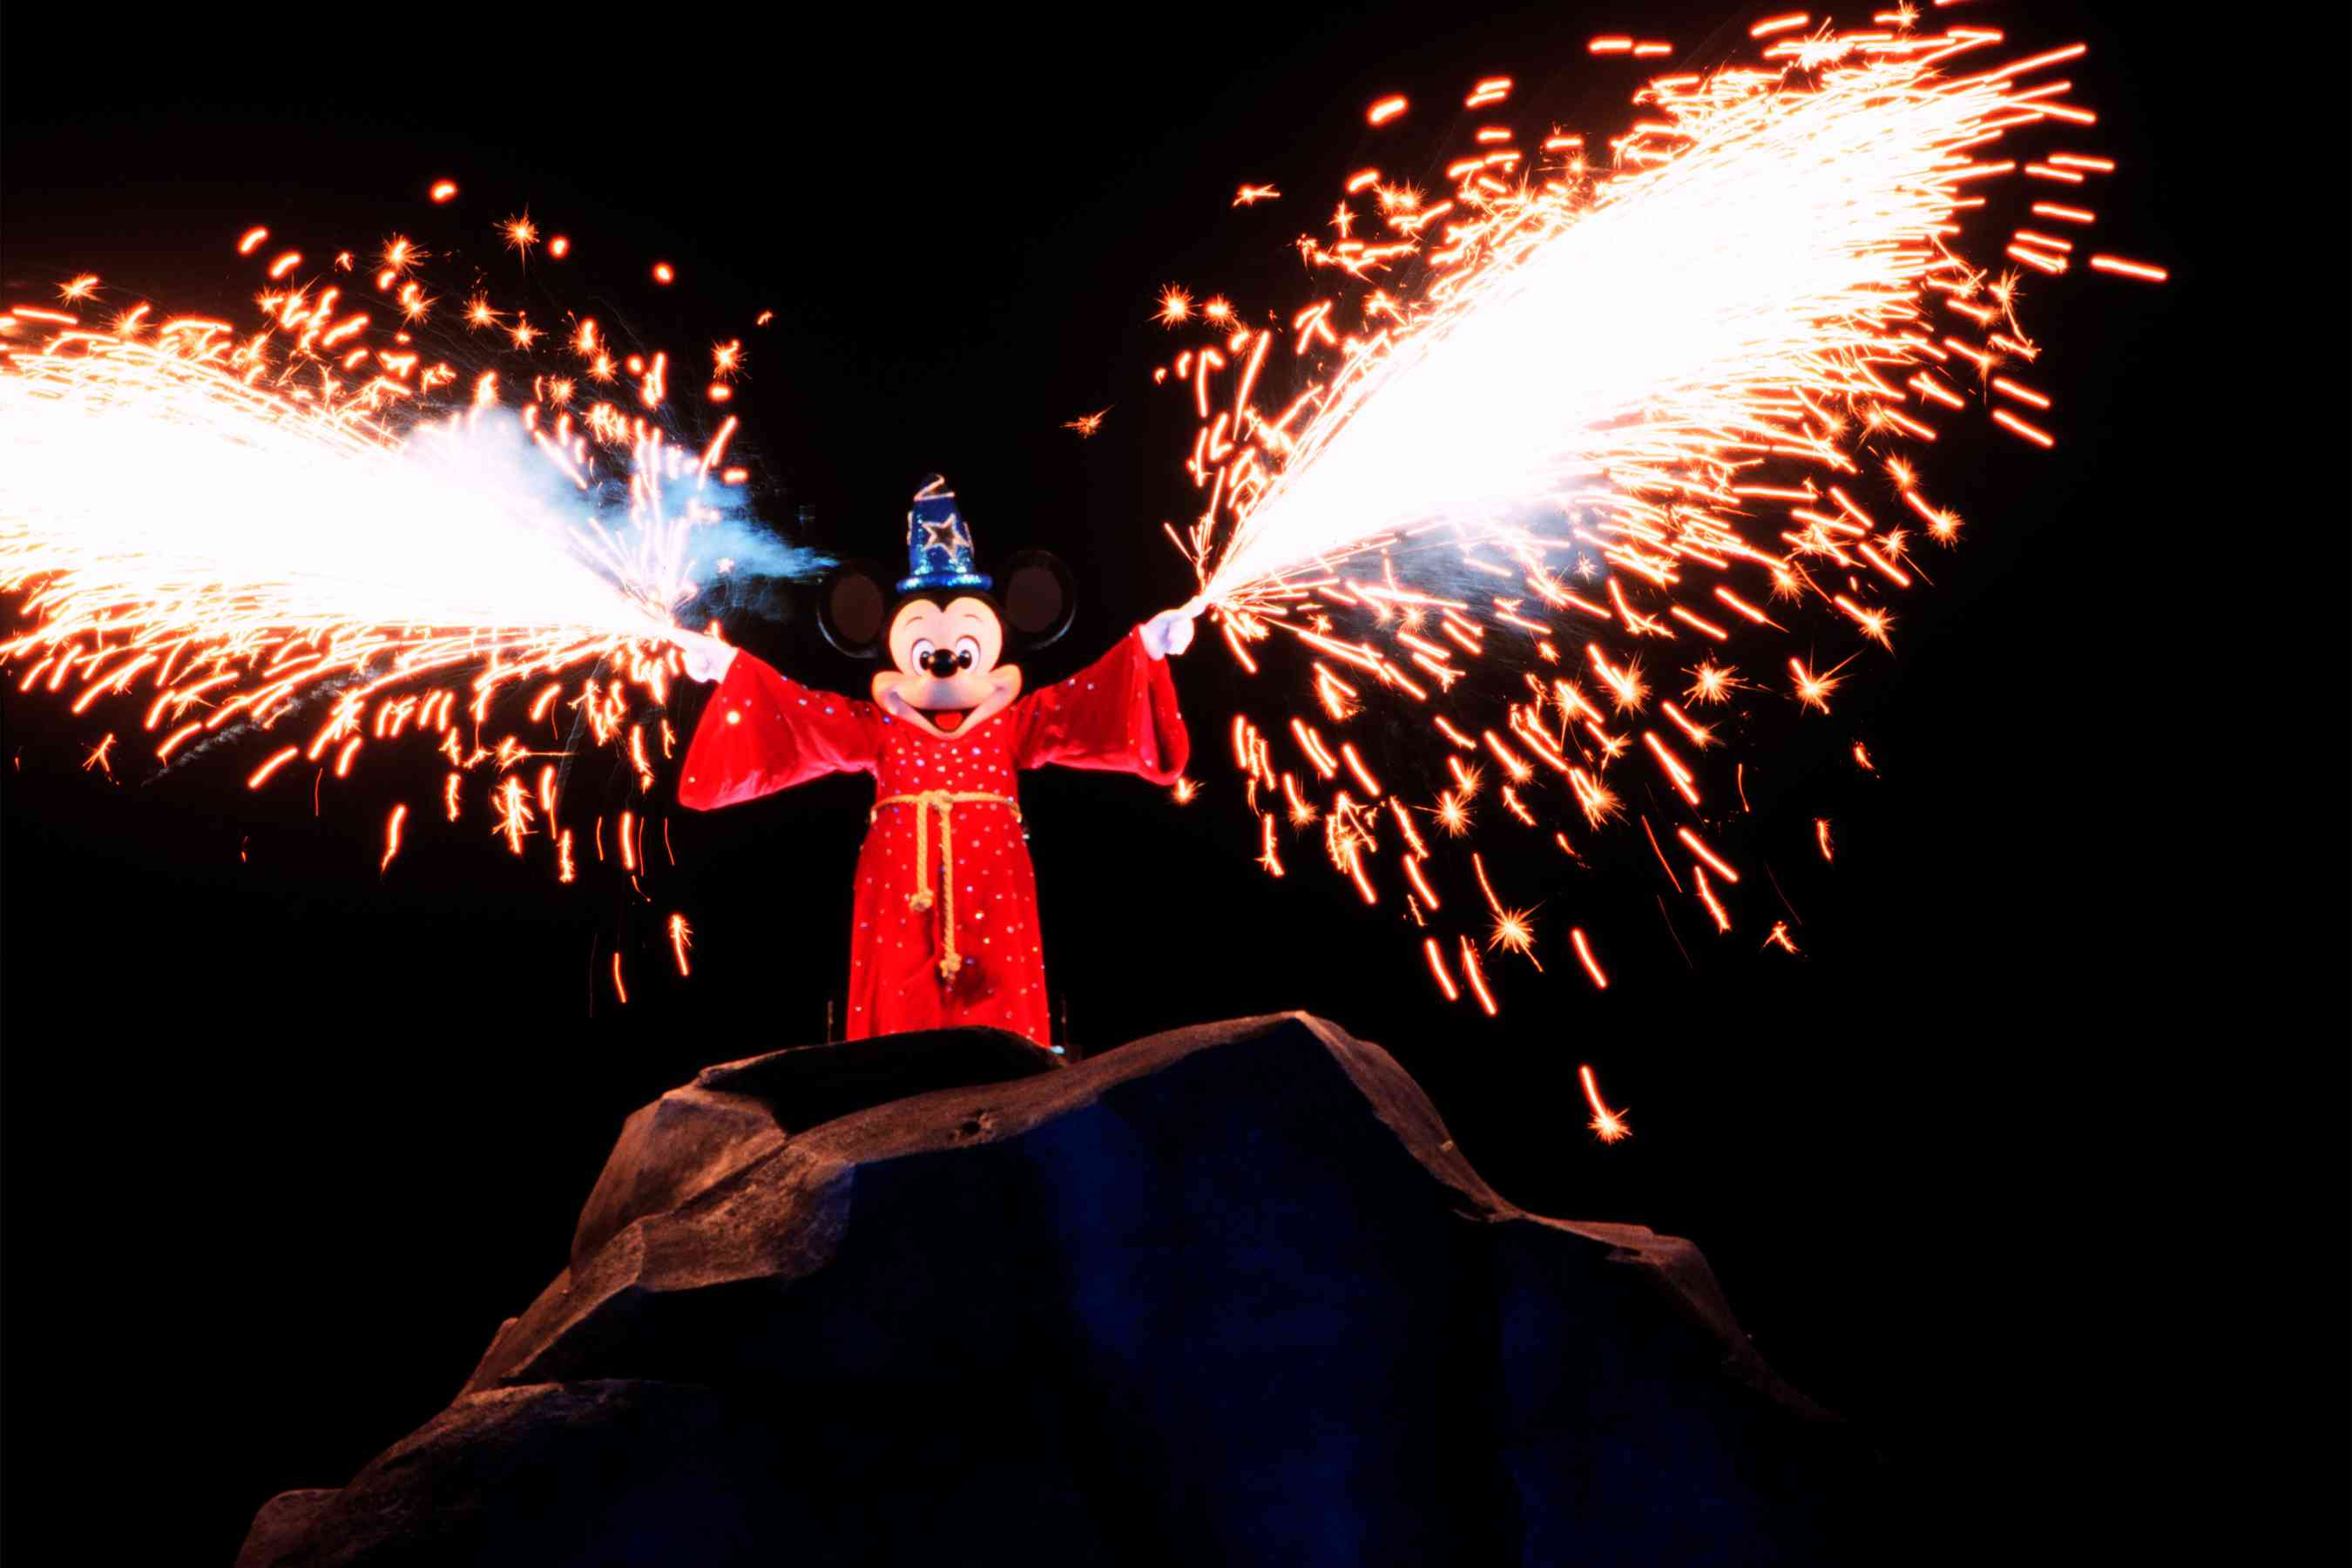 Wizard Mickey holding sparklers at the Fantasmic! show in Hollywood Studios